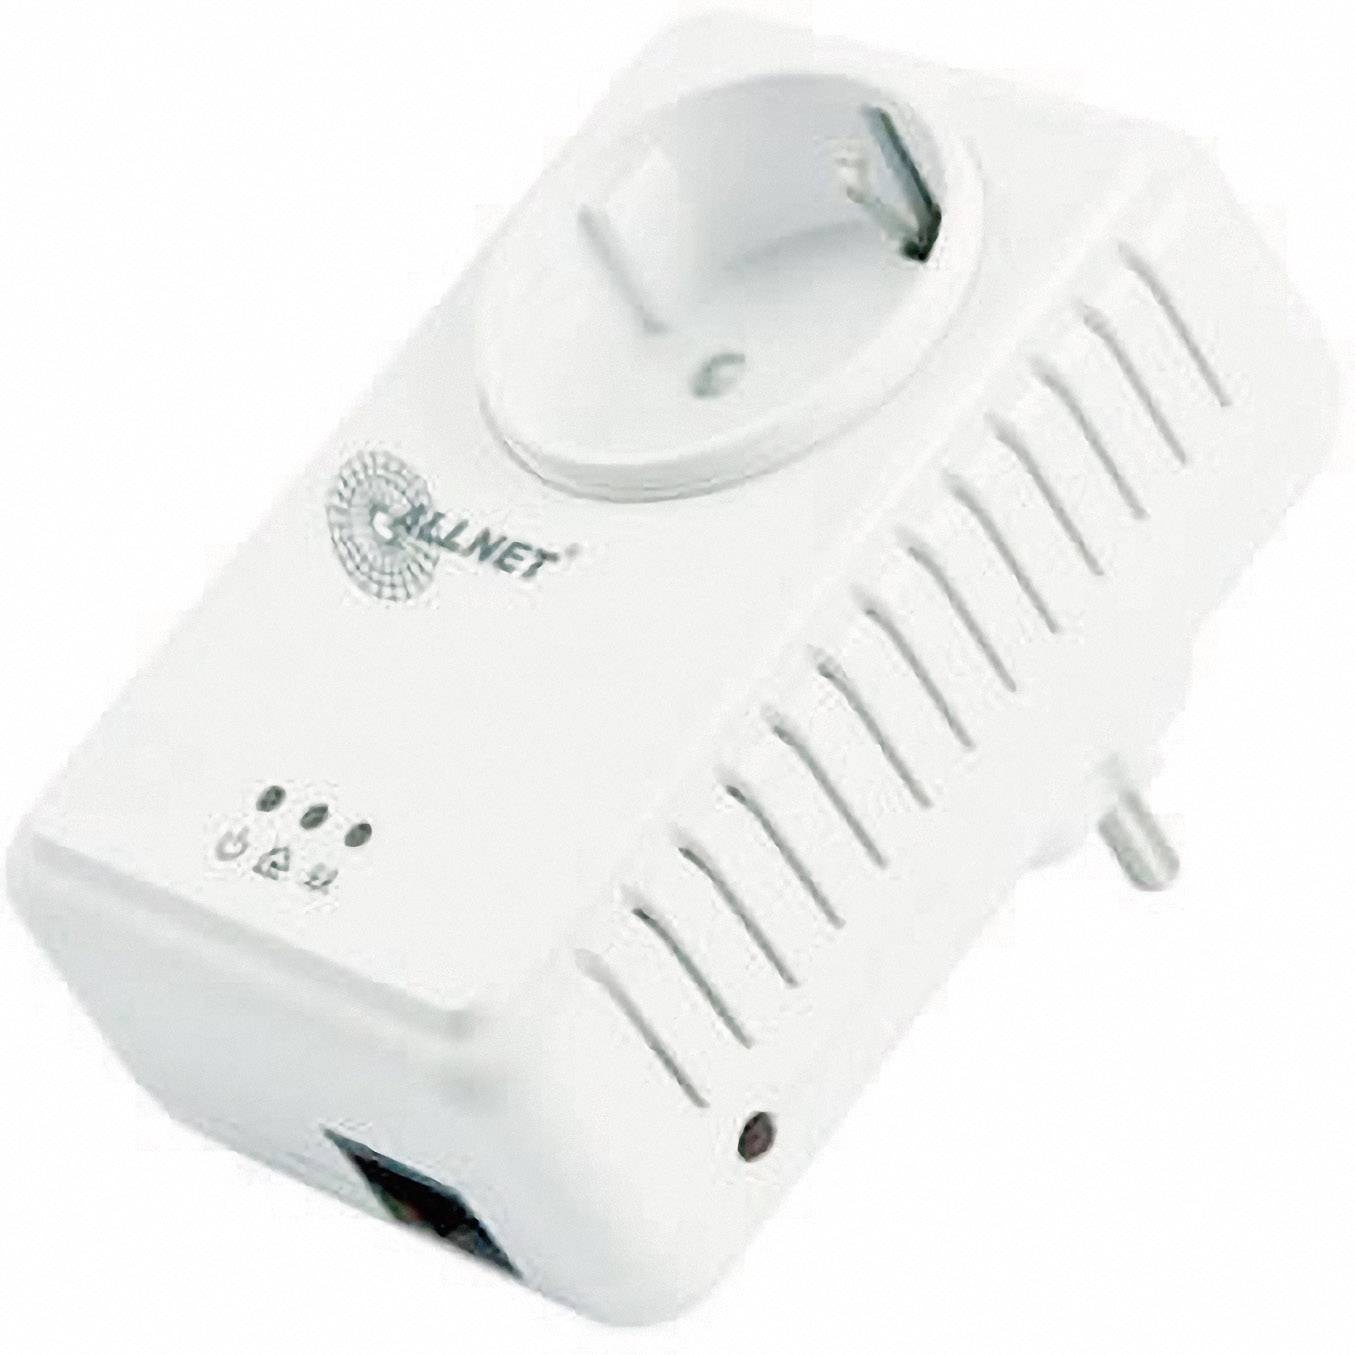 Powerline adaptér Allnet ALL168255SINGLE, 500 Mbit/s